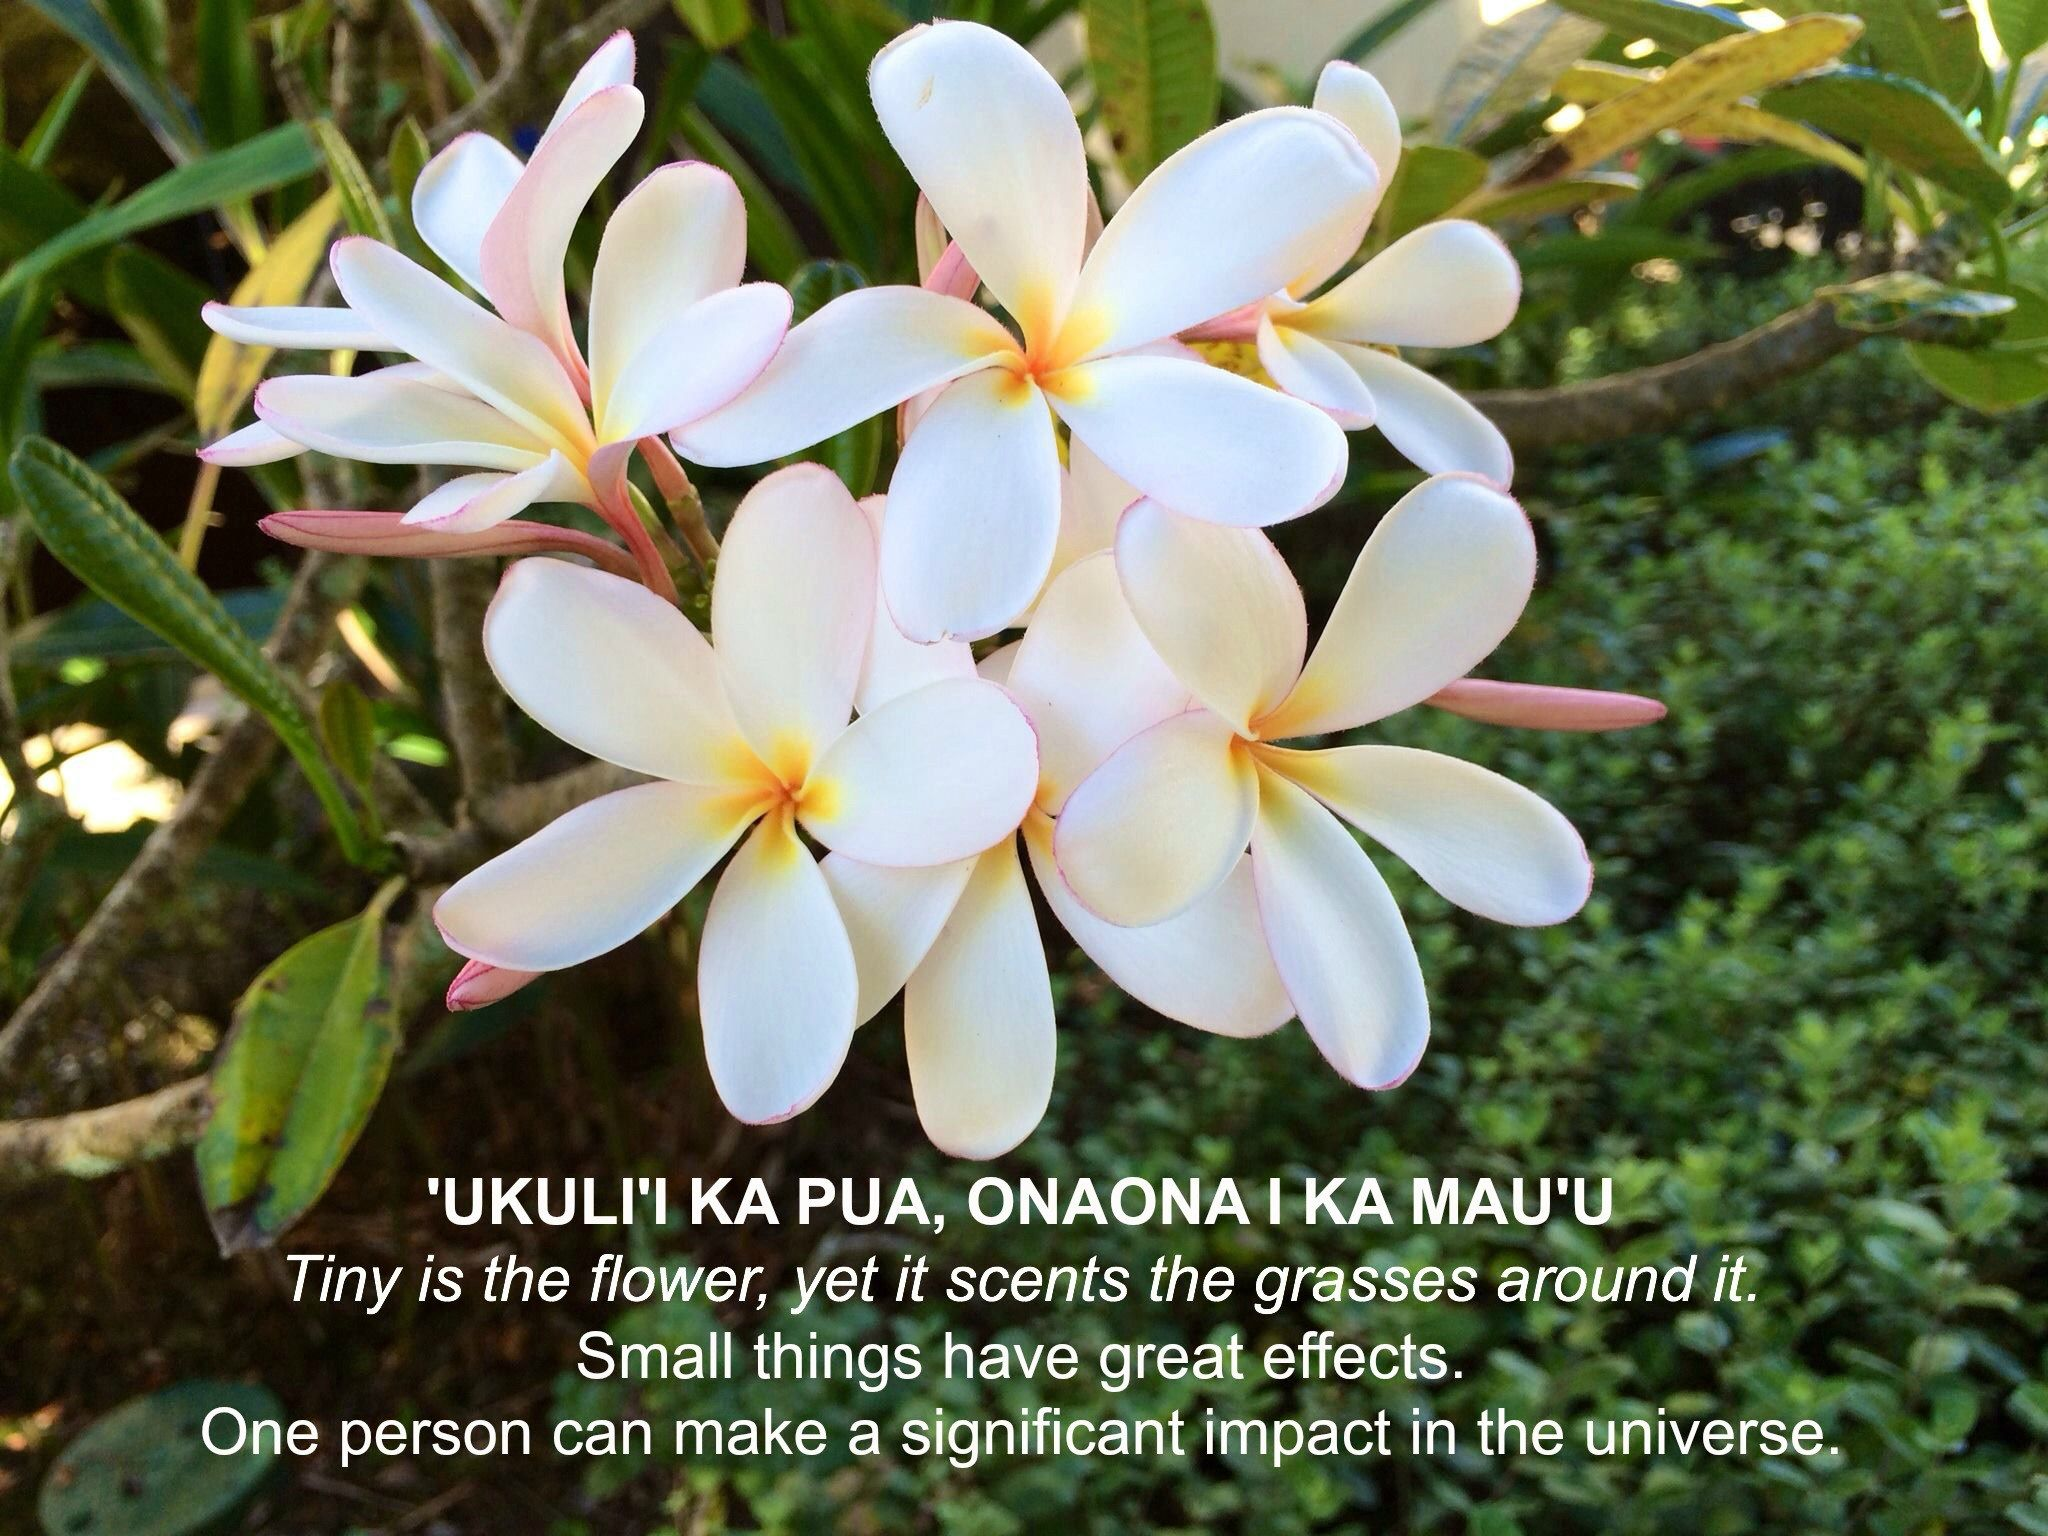 Hawaiian proverbs tattoospiercings pinterest hawaiian hawaii tiny is the flower yet it scents the grasses around it hawaiian proverb small things have a great effect izmirmasajfo Gallery